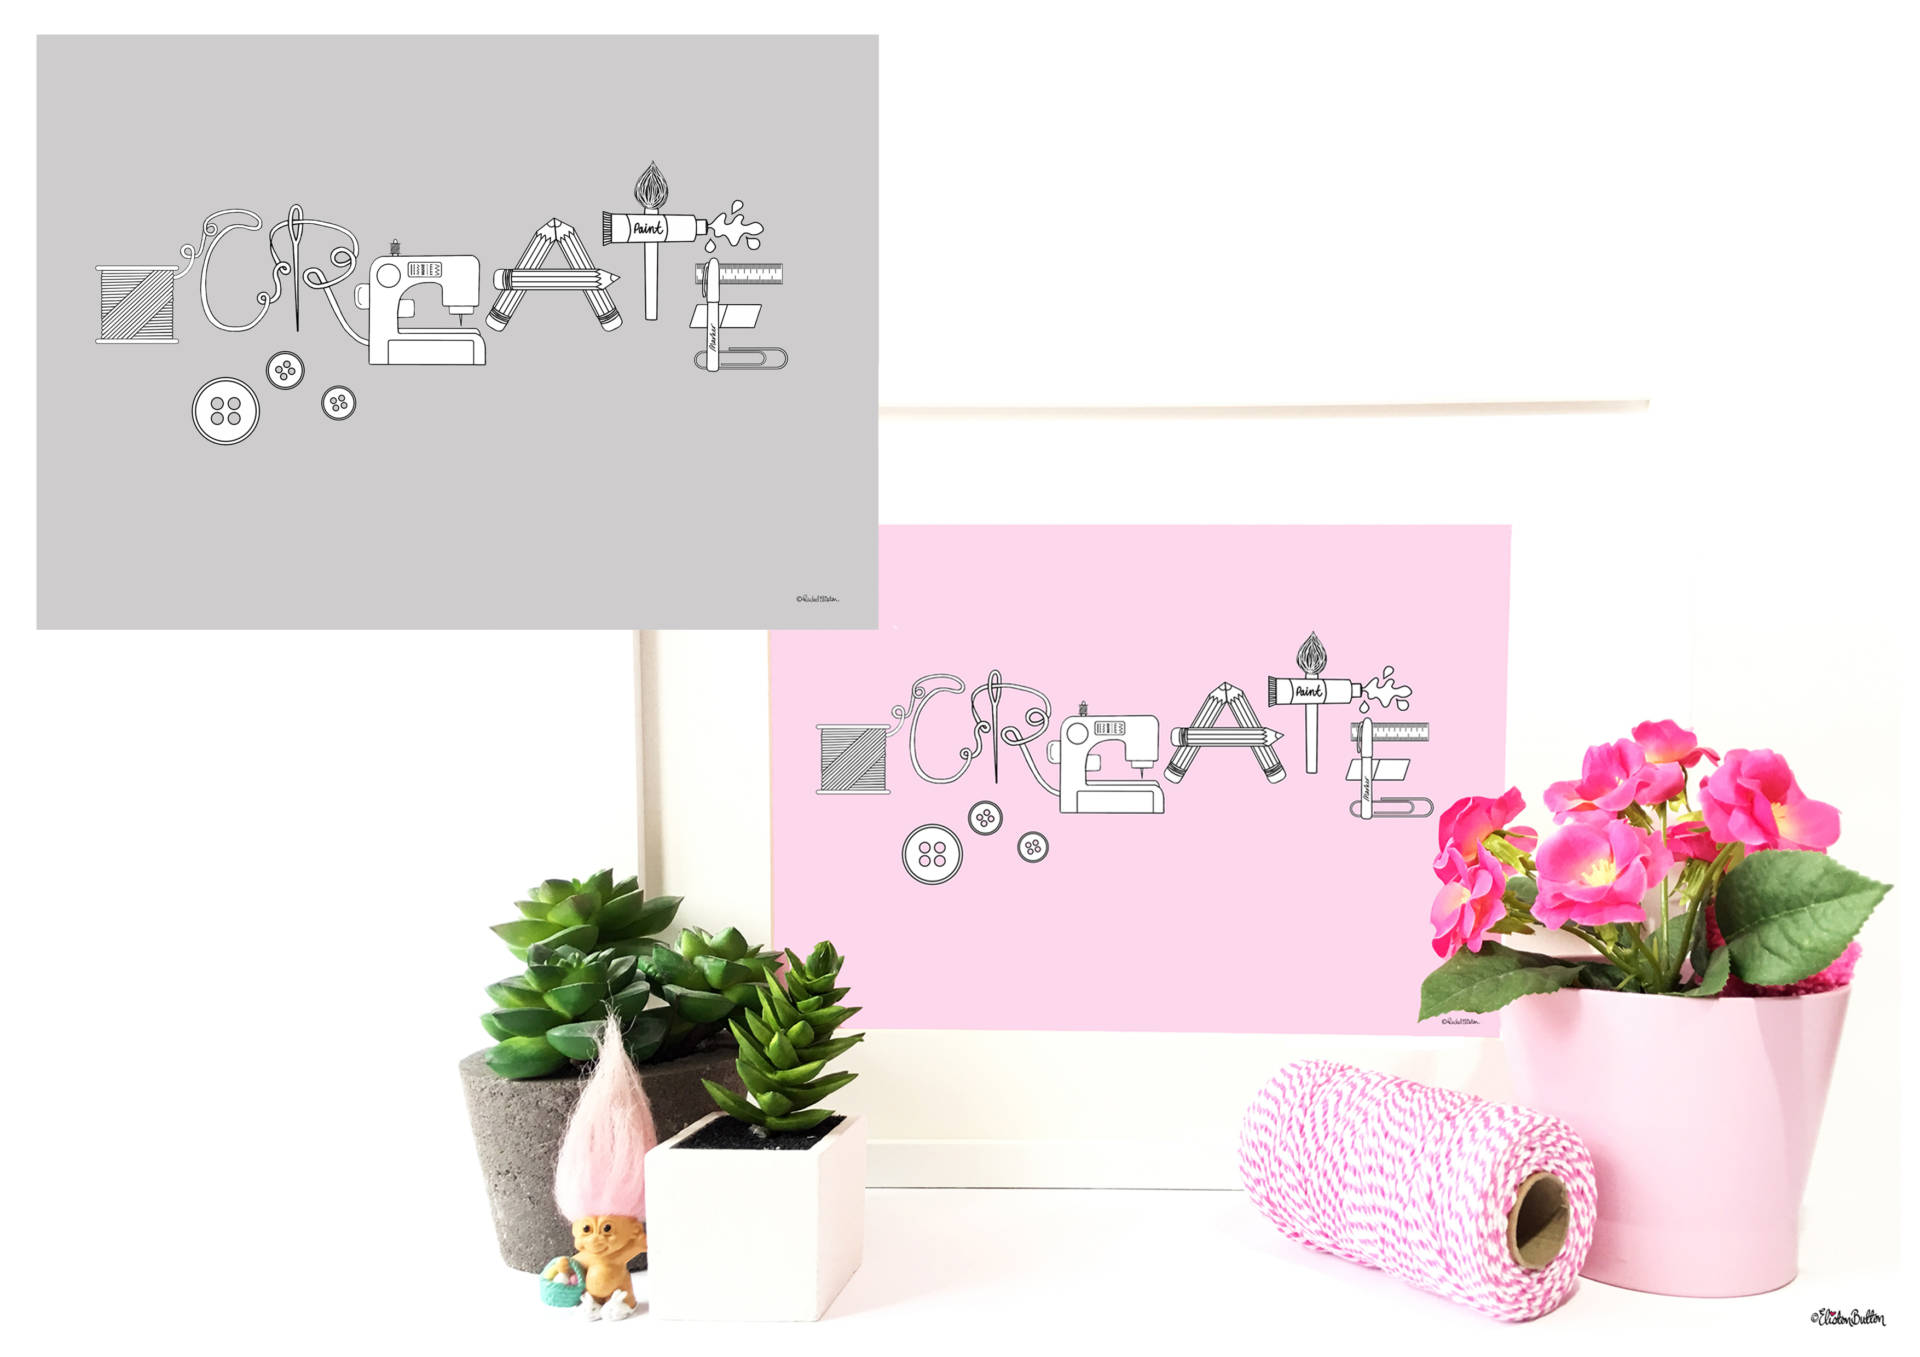 Pink and Grey Create Word Art Prints - by Eliston Button - Create 30 - No. 11 - Create Word Art Prints at www.elistonbutton.com - Eliston Button - That Crafty Kid – Art, Design, Craft & Adventure.